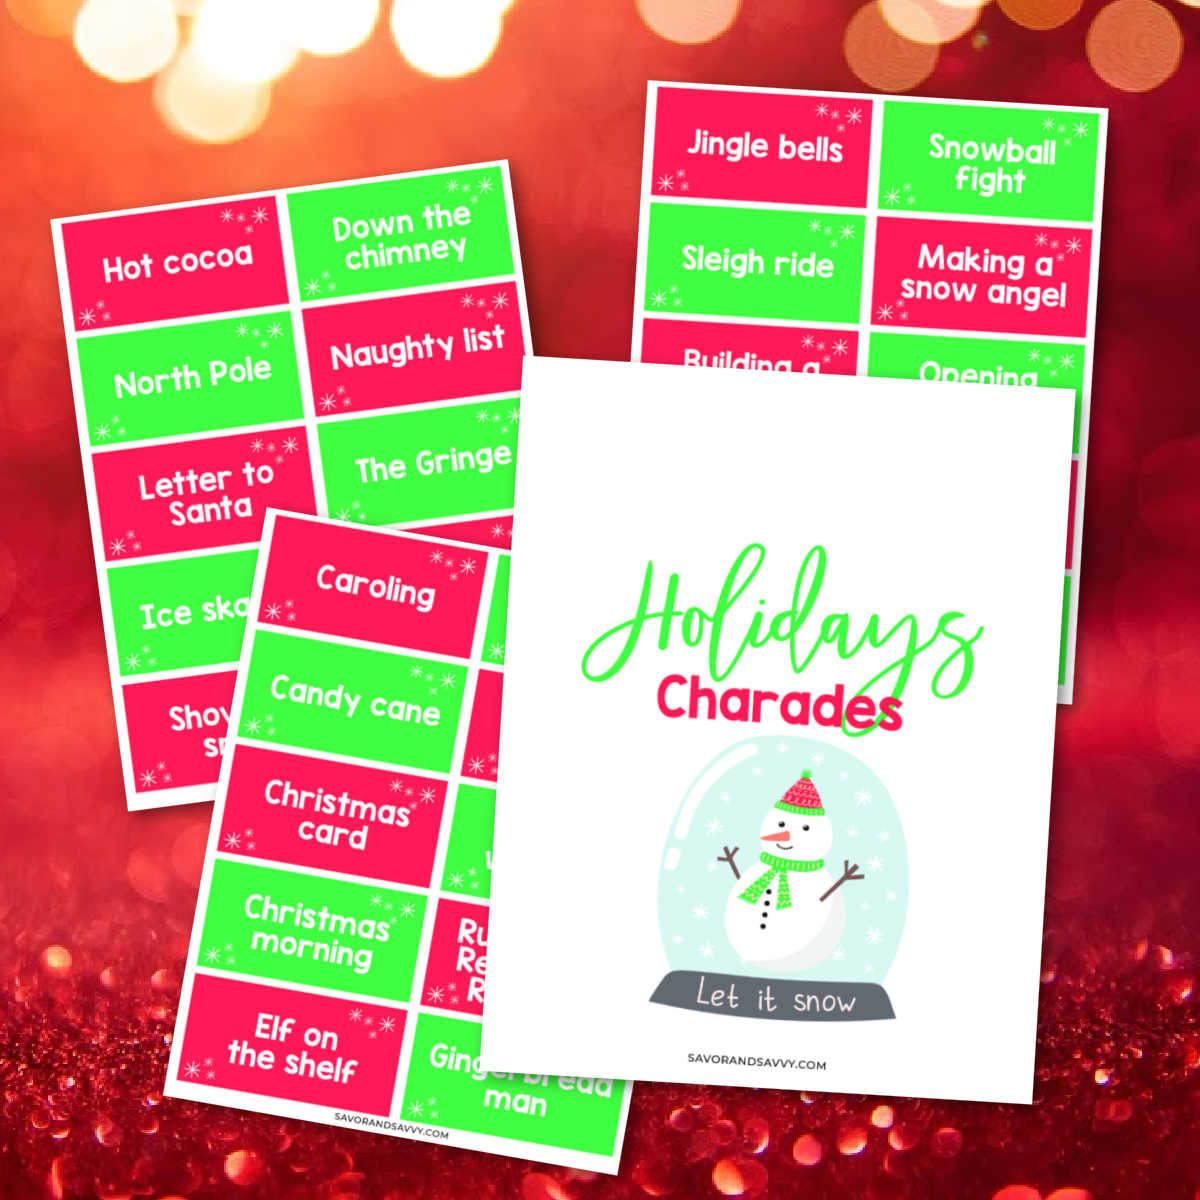 three free printable sheets with charades topics on a bright red background.